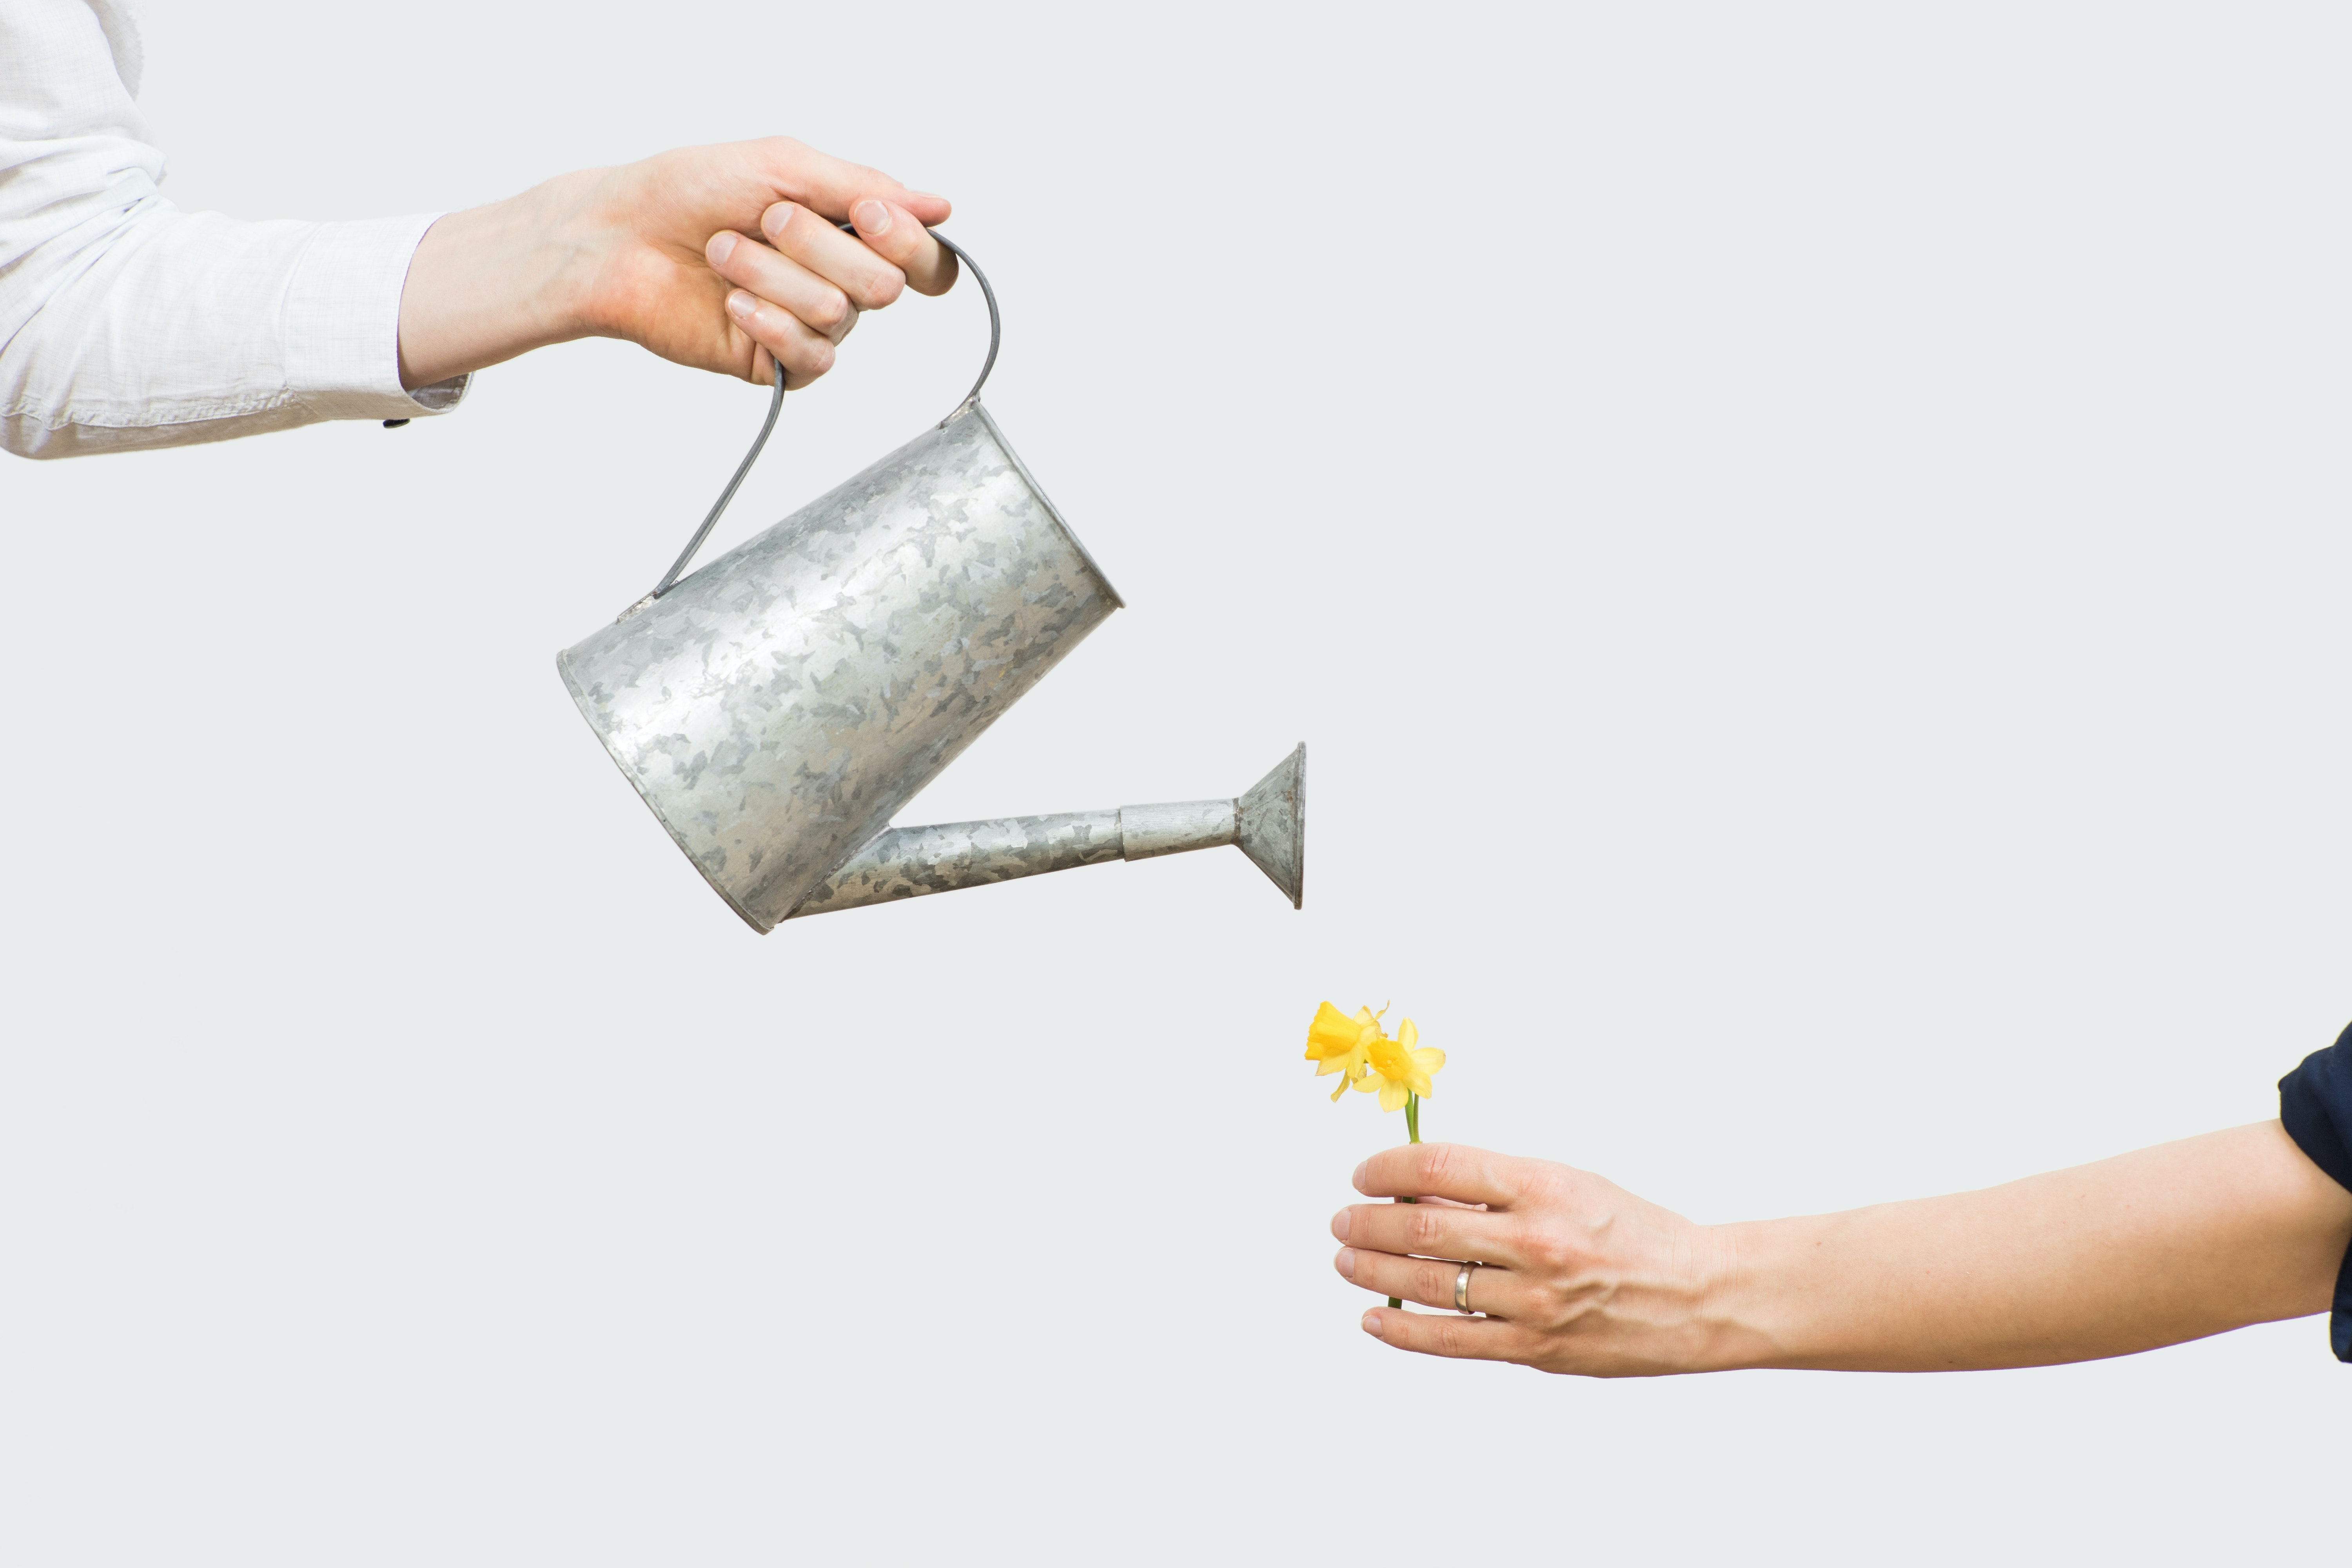 Watering can as a metaphor for researchers' salary in Germany